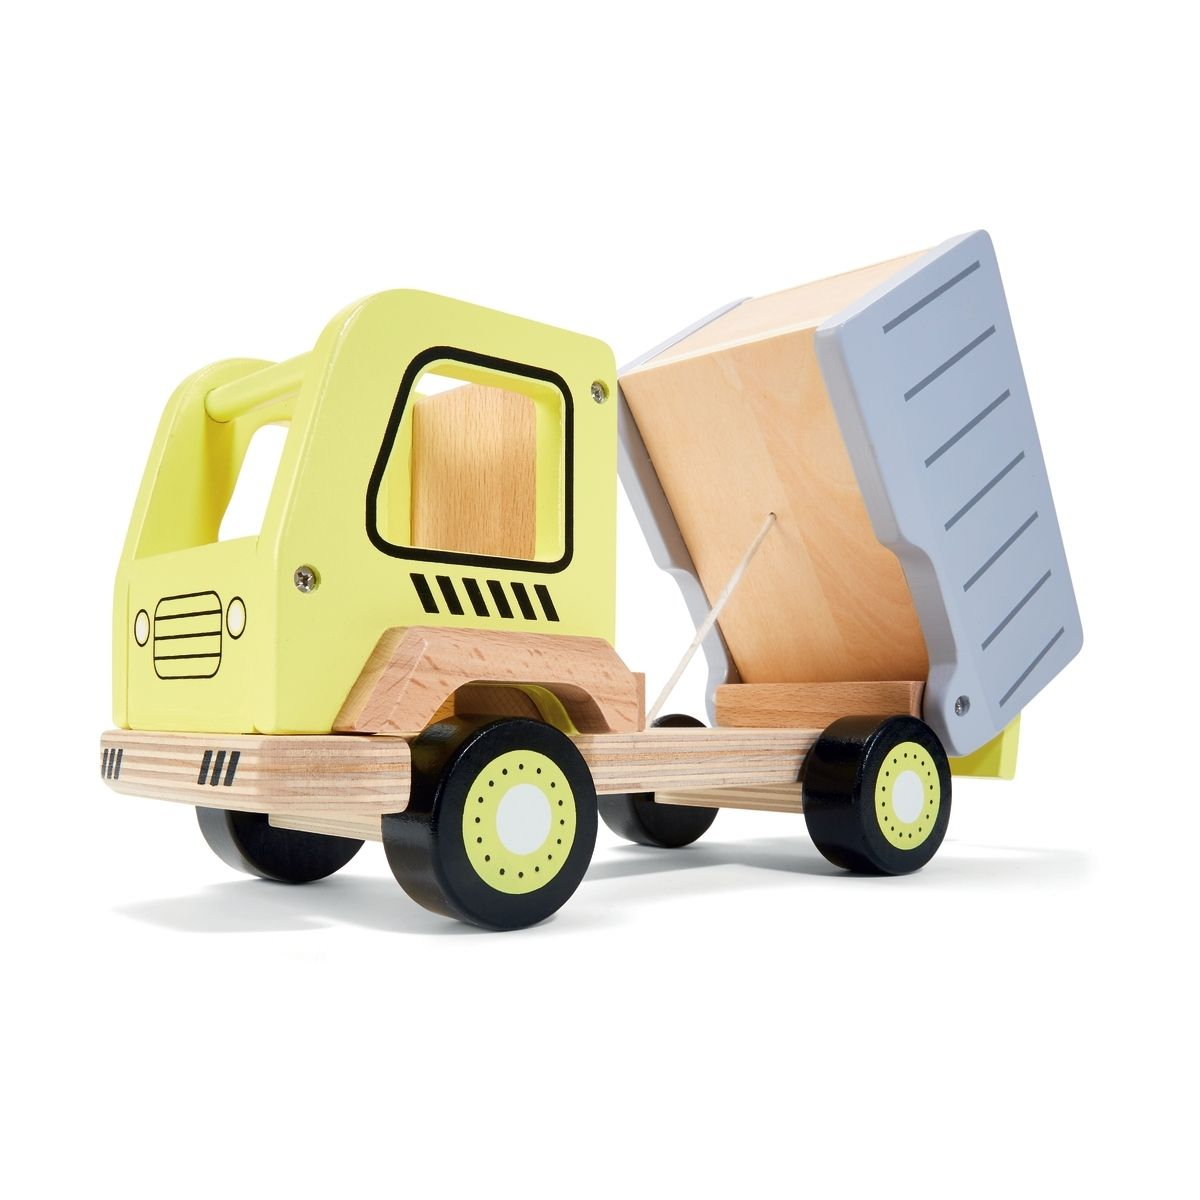 Wooden Toy Dump Truck Kmart Wooden Toys Making Wooden Toys Toys